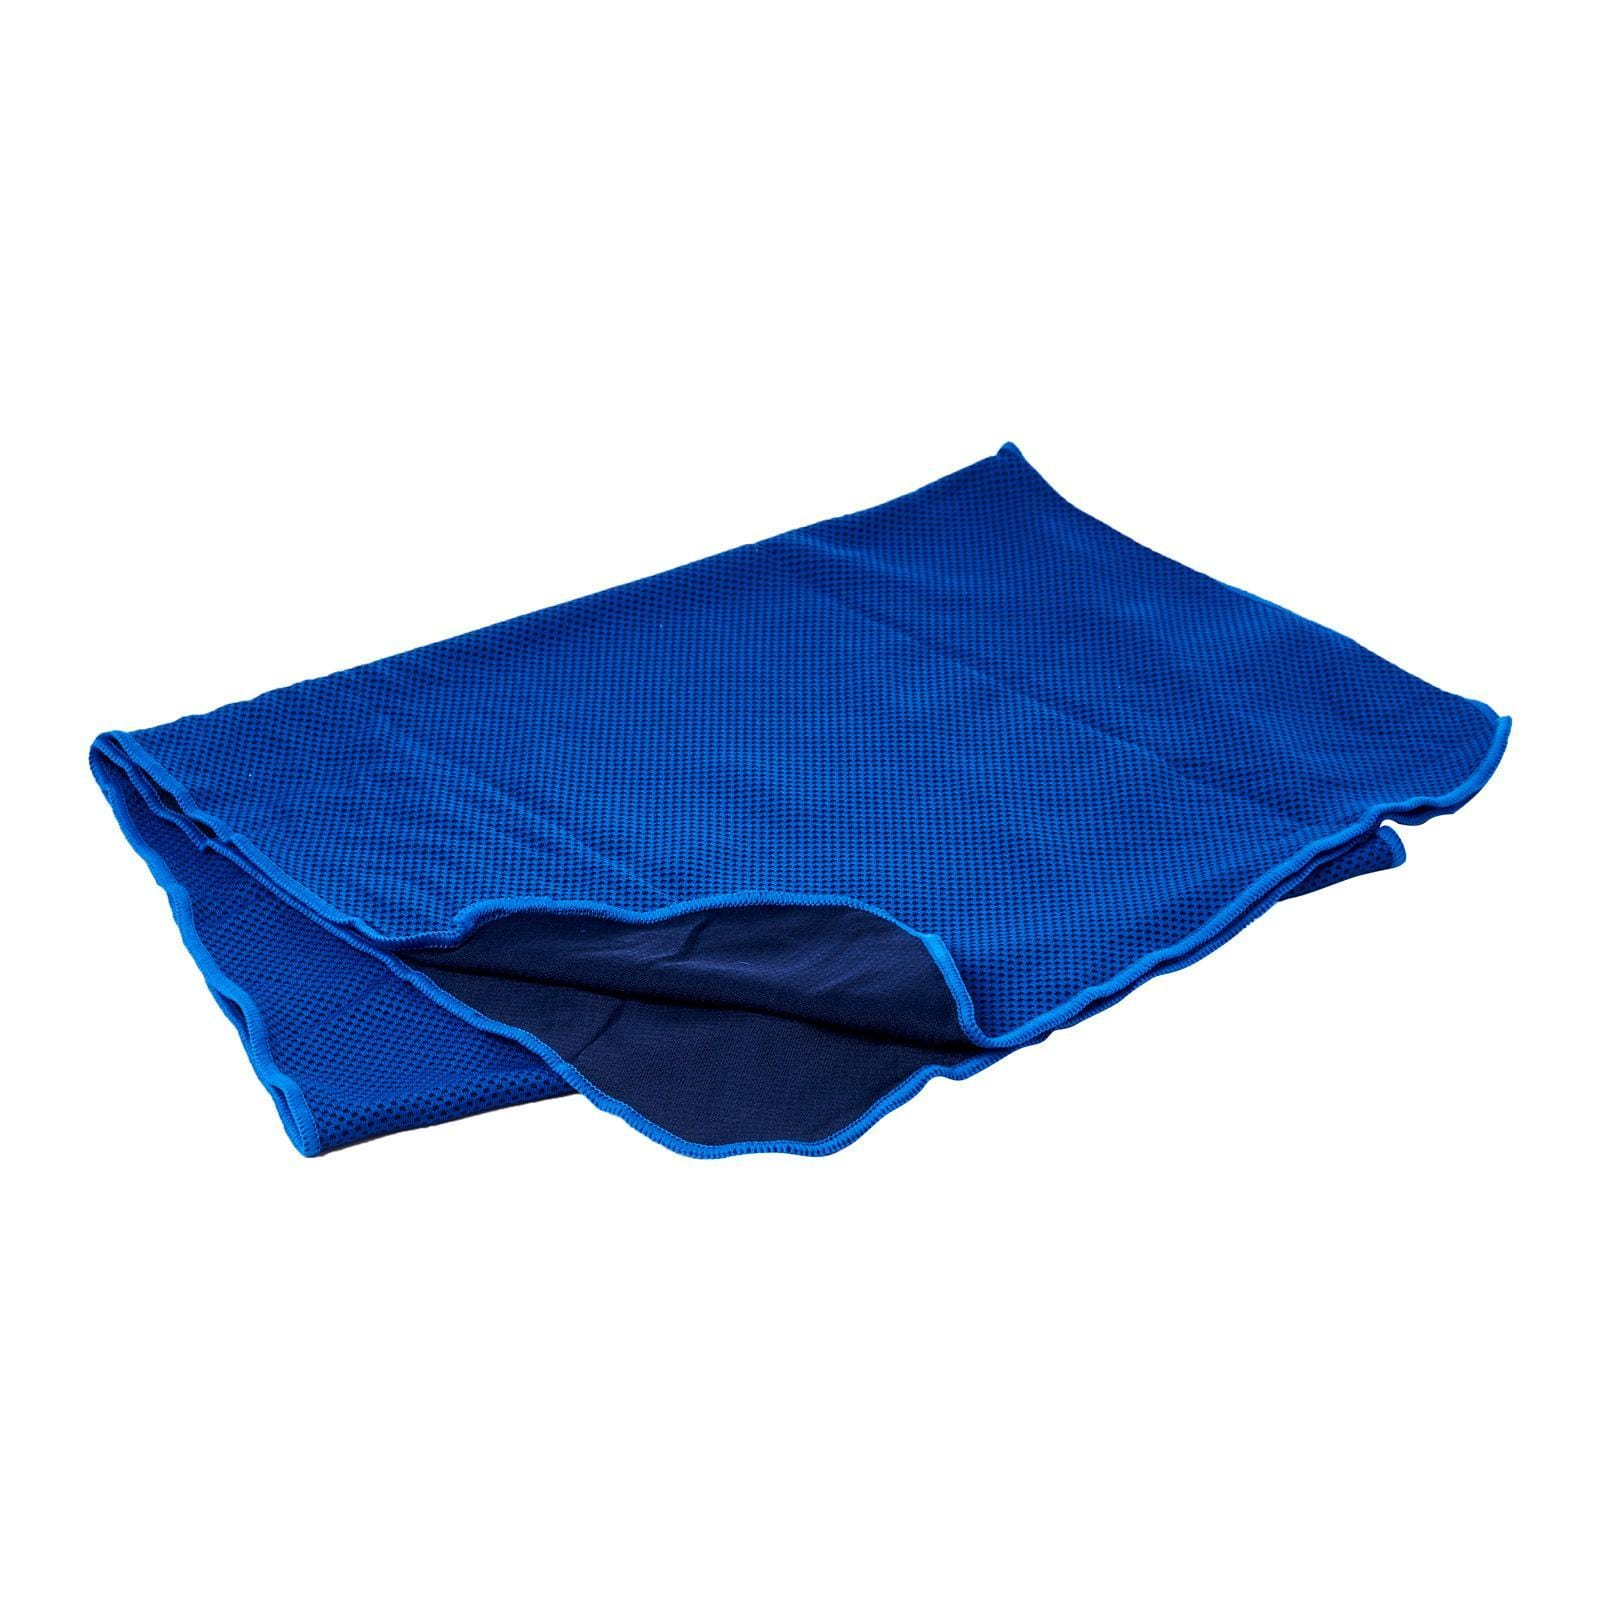 Coolite Sports Towel In Cobalt Blue